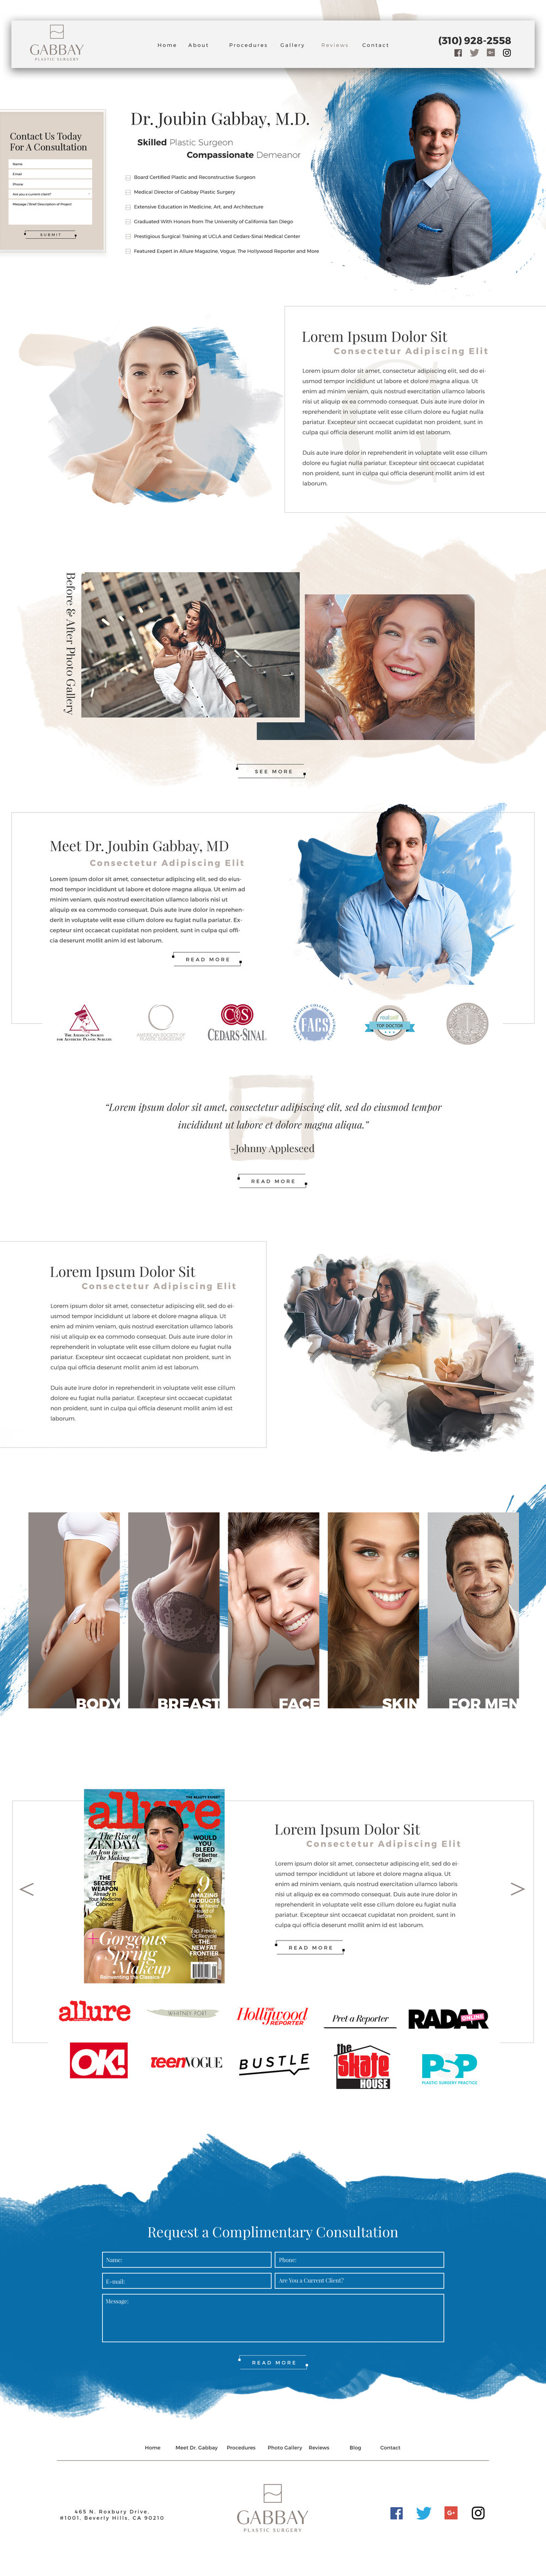 Web Design: Dr. Gabbay- Plastic Surgery Website